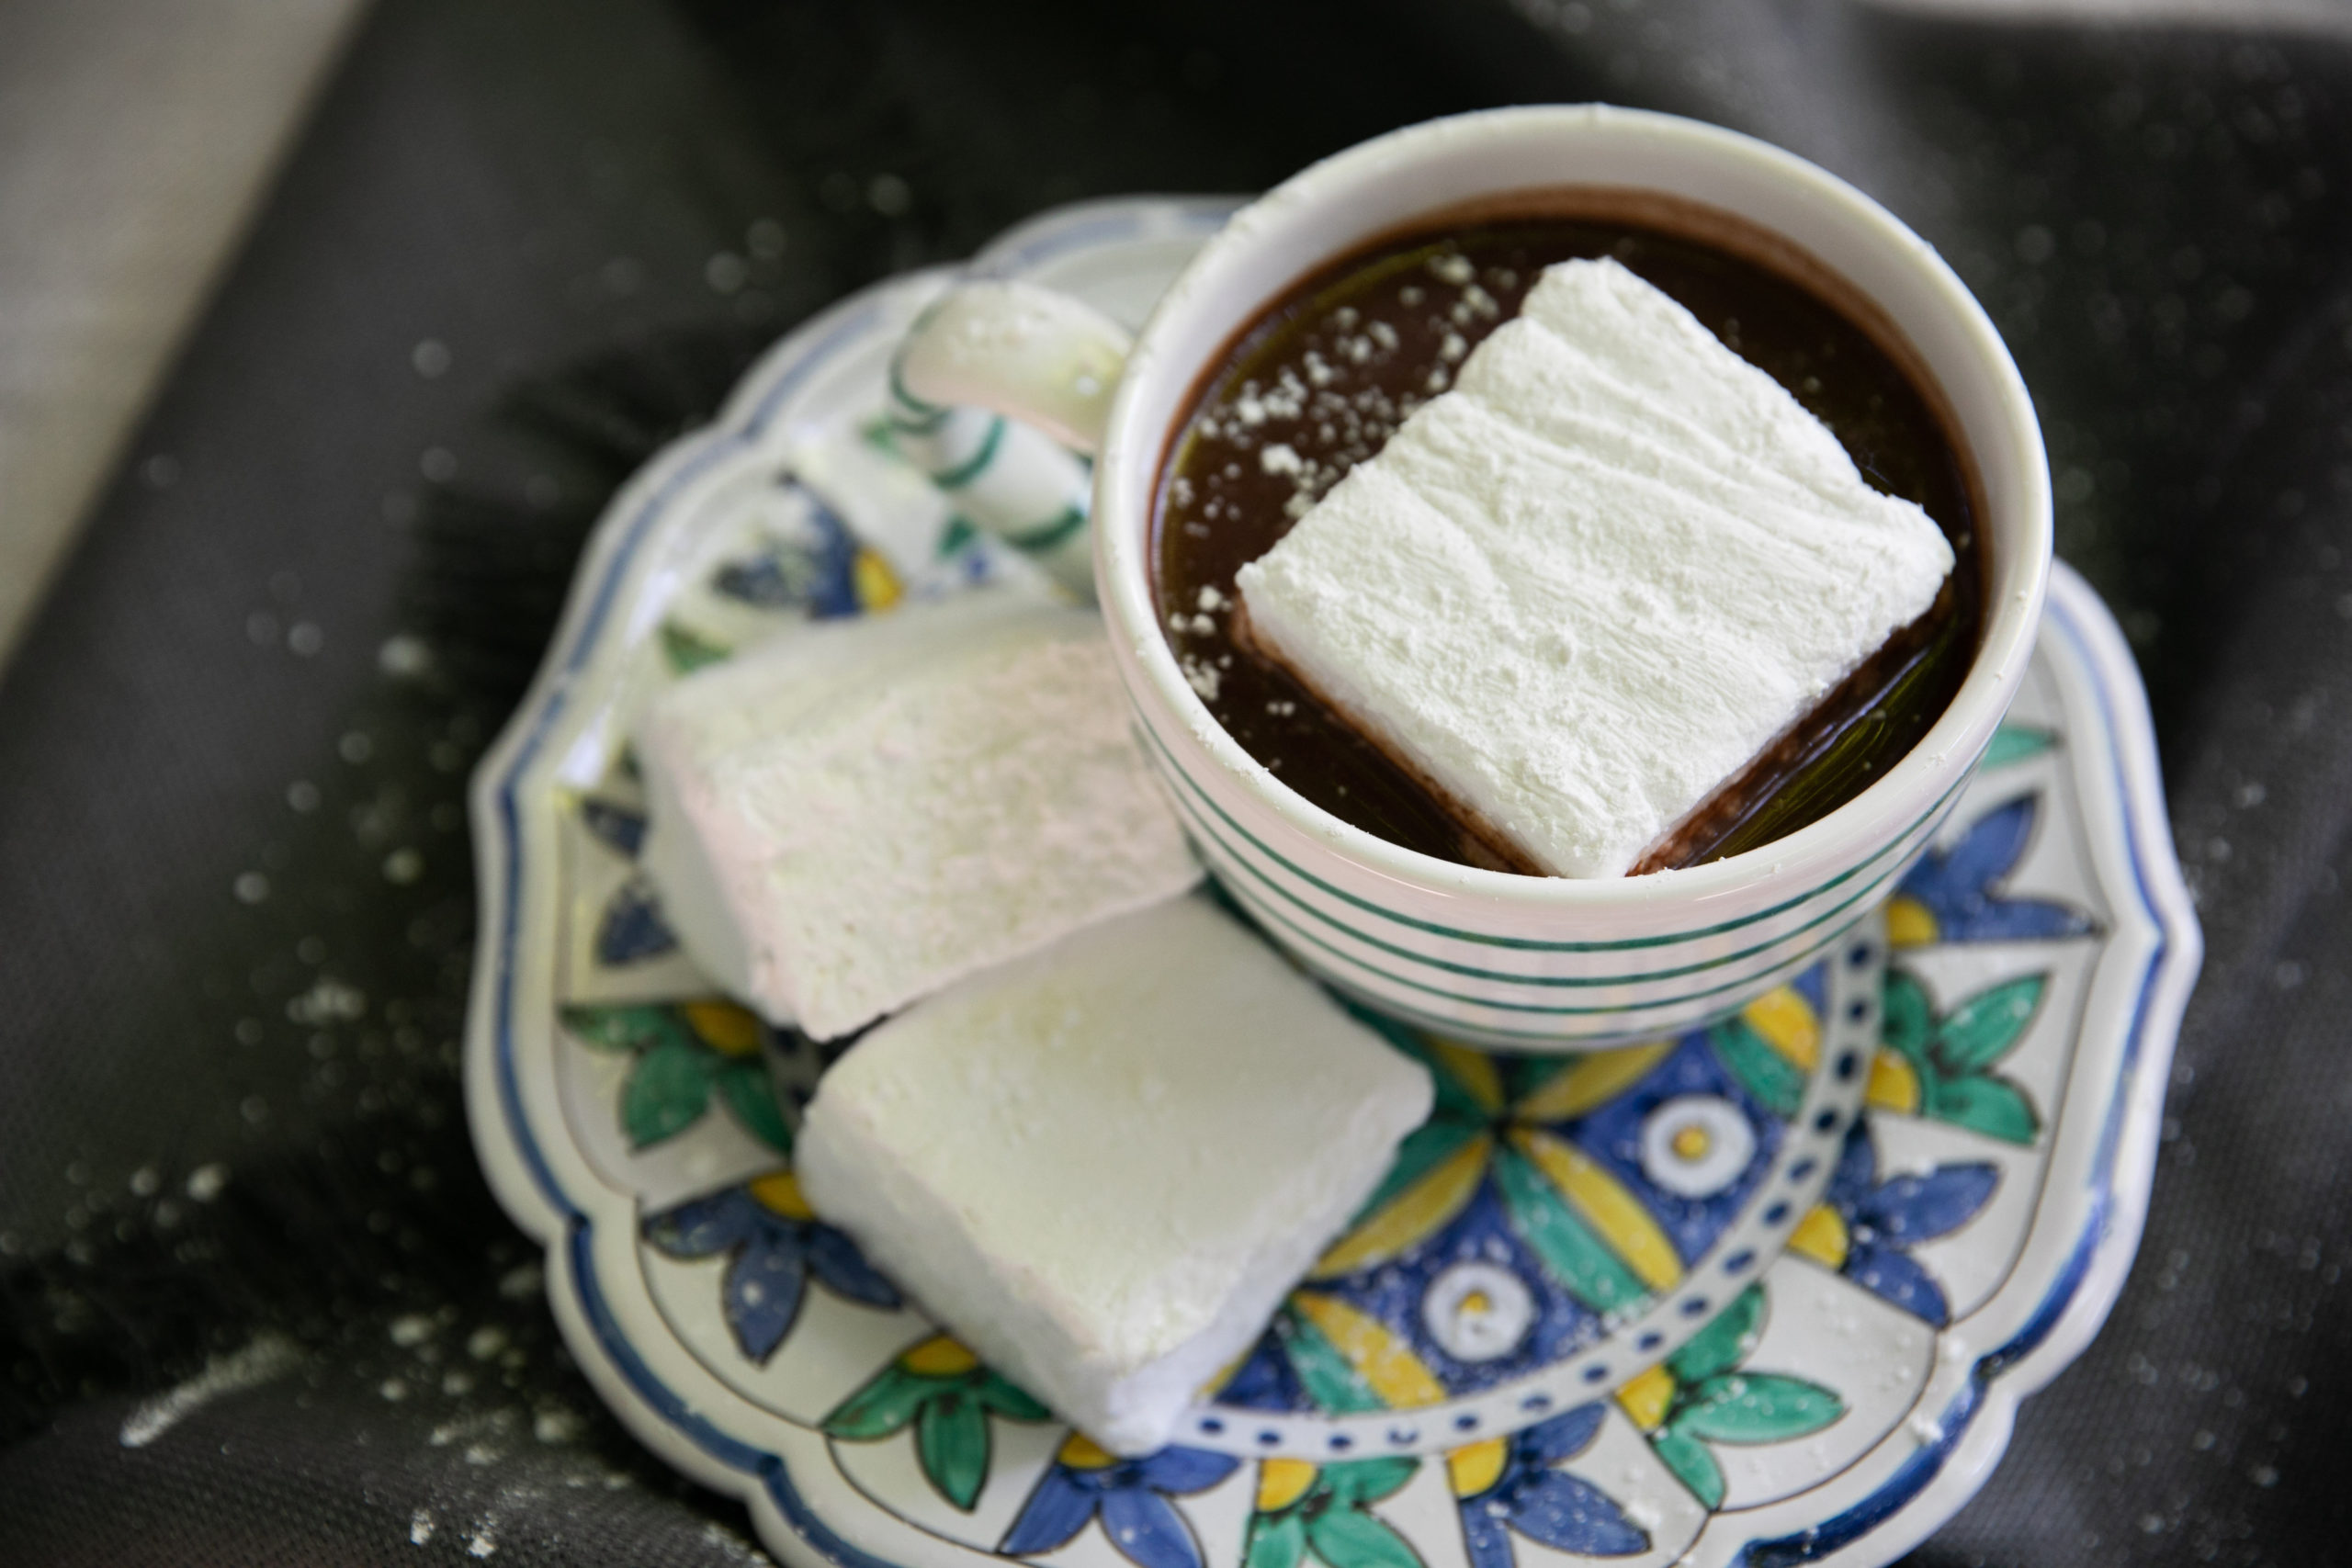 Hot chocolate with homemade marshmallows, one of the recipes in the winter Loaves & Fishes Farm Series trio of cookbooks.